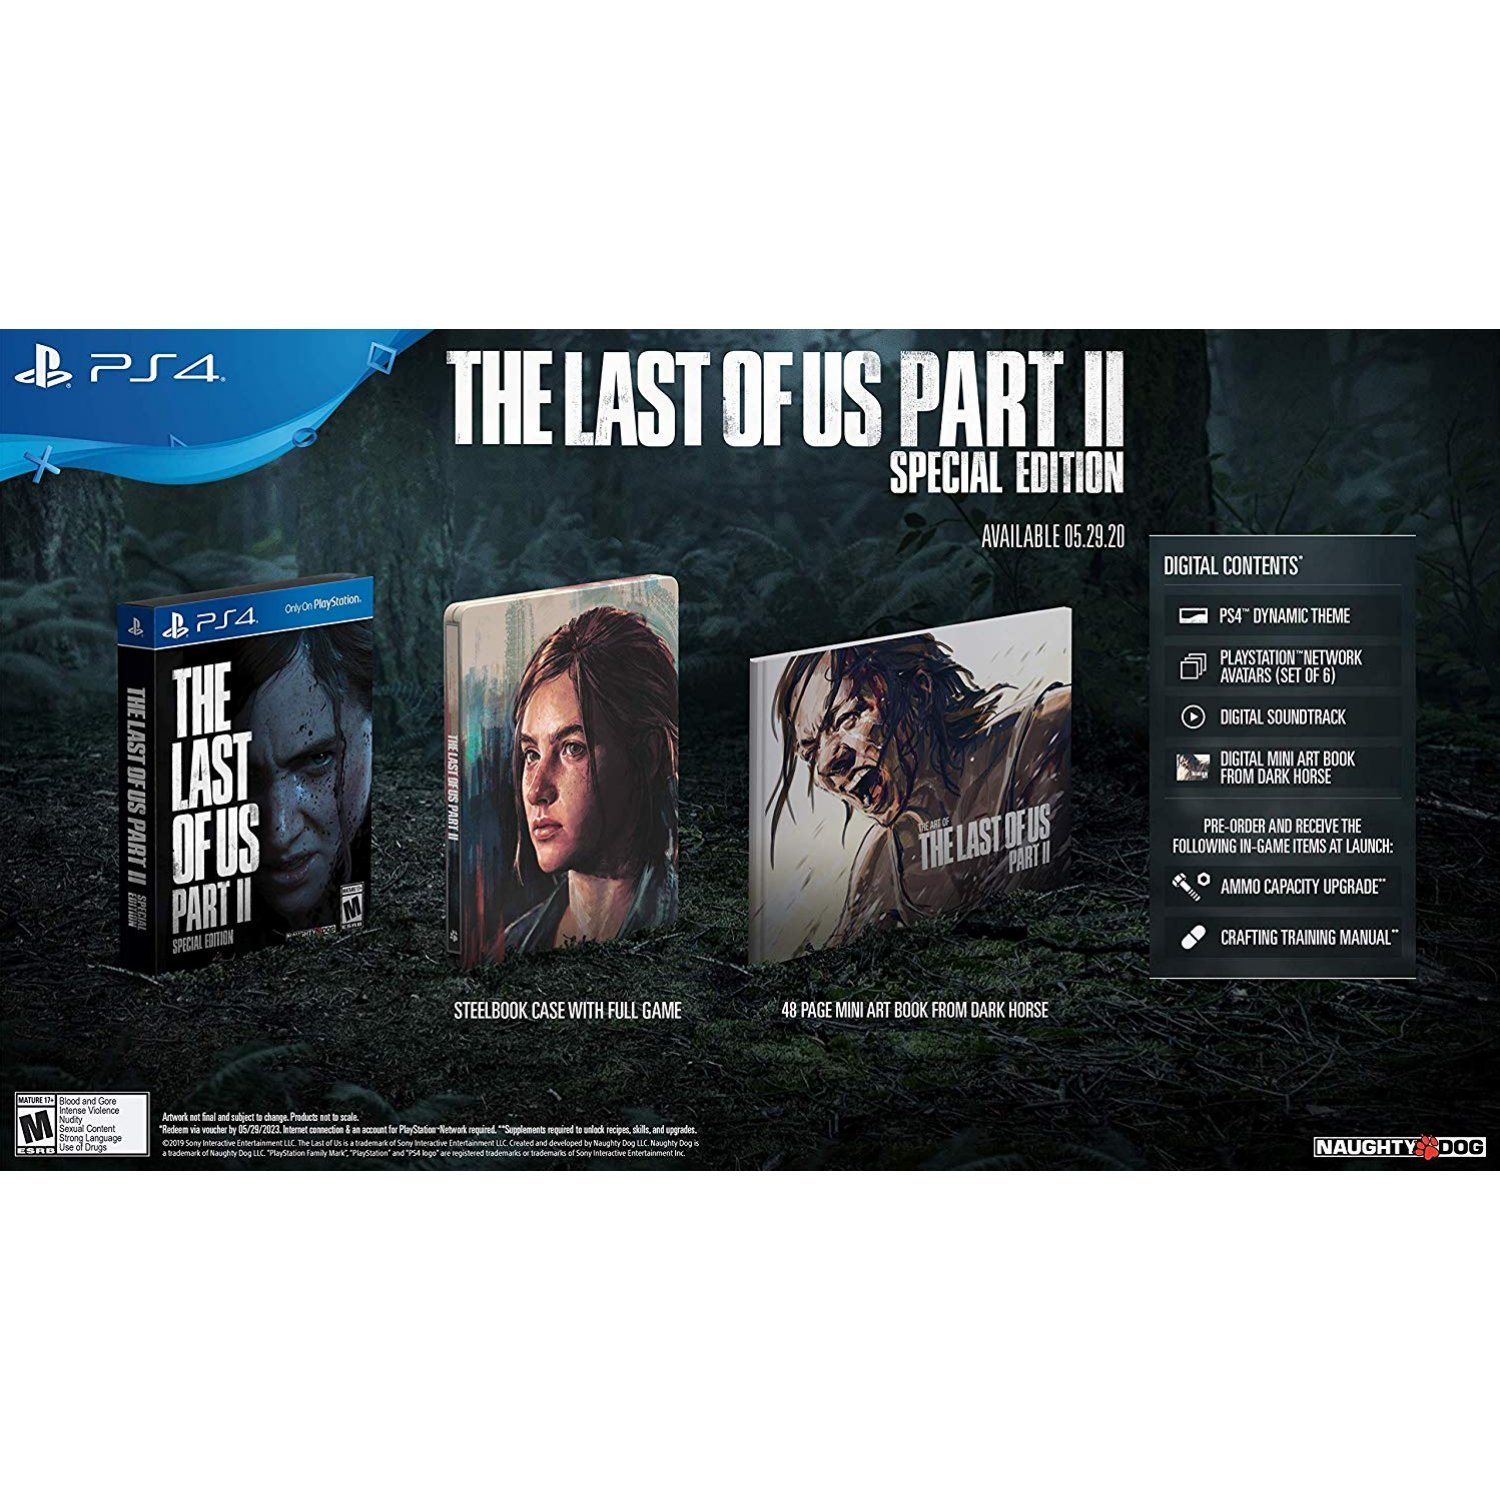 the-last-of-us-part-ii-special-edition-609023.12.jpg